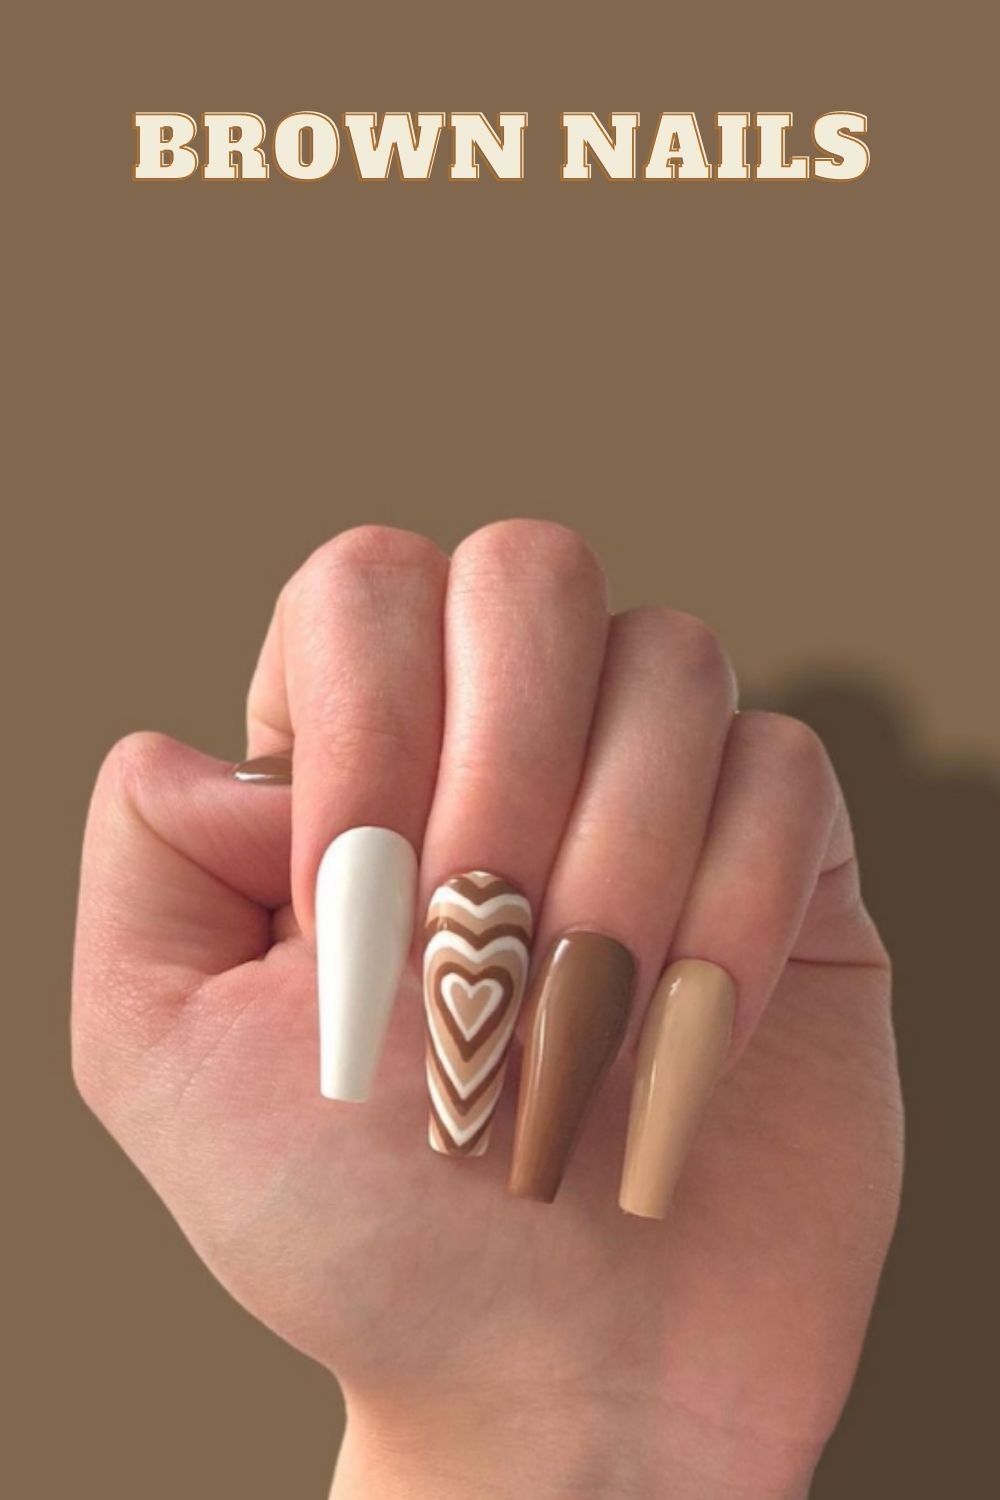 Brown nails   the best fall nails design trendy get ready now